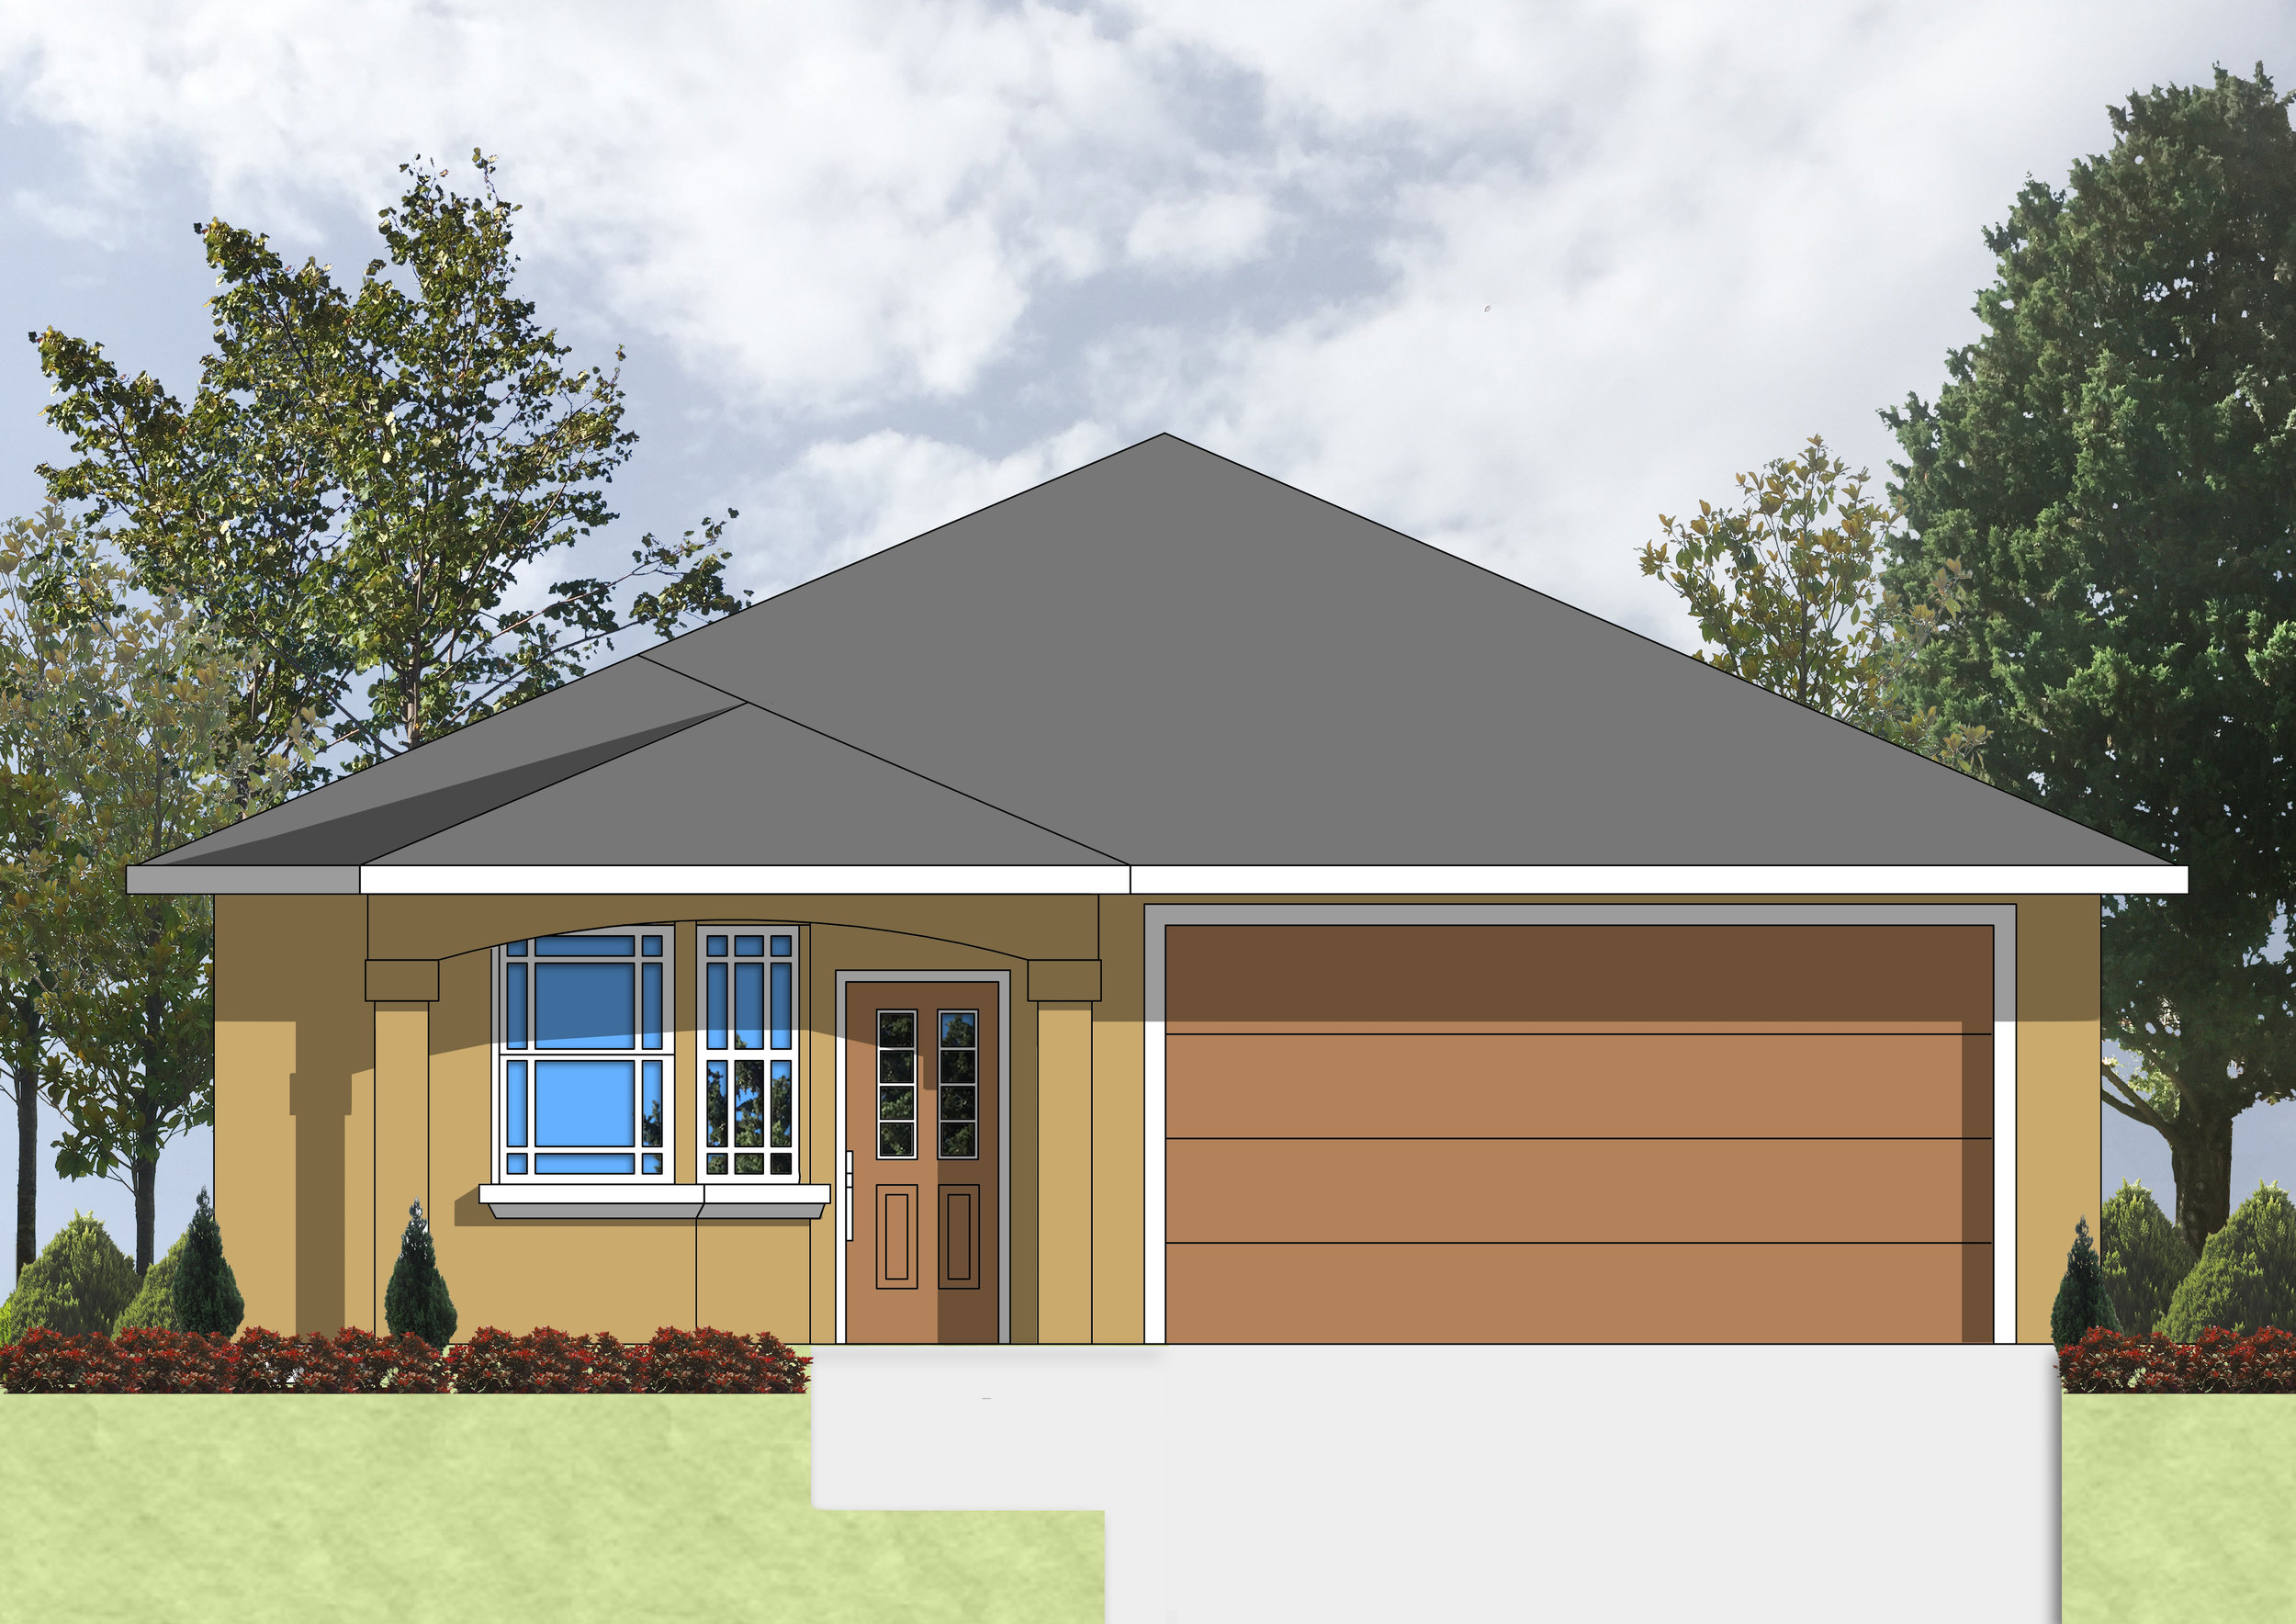 783 A ELEVATION RENDERING - revisioned 2.jpg